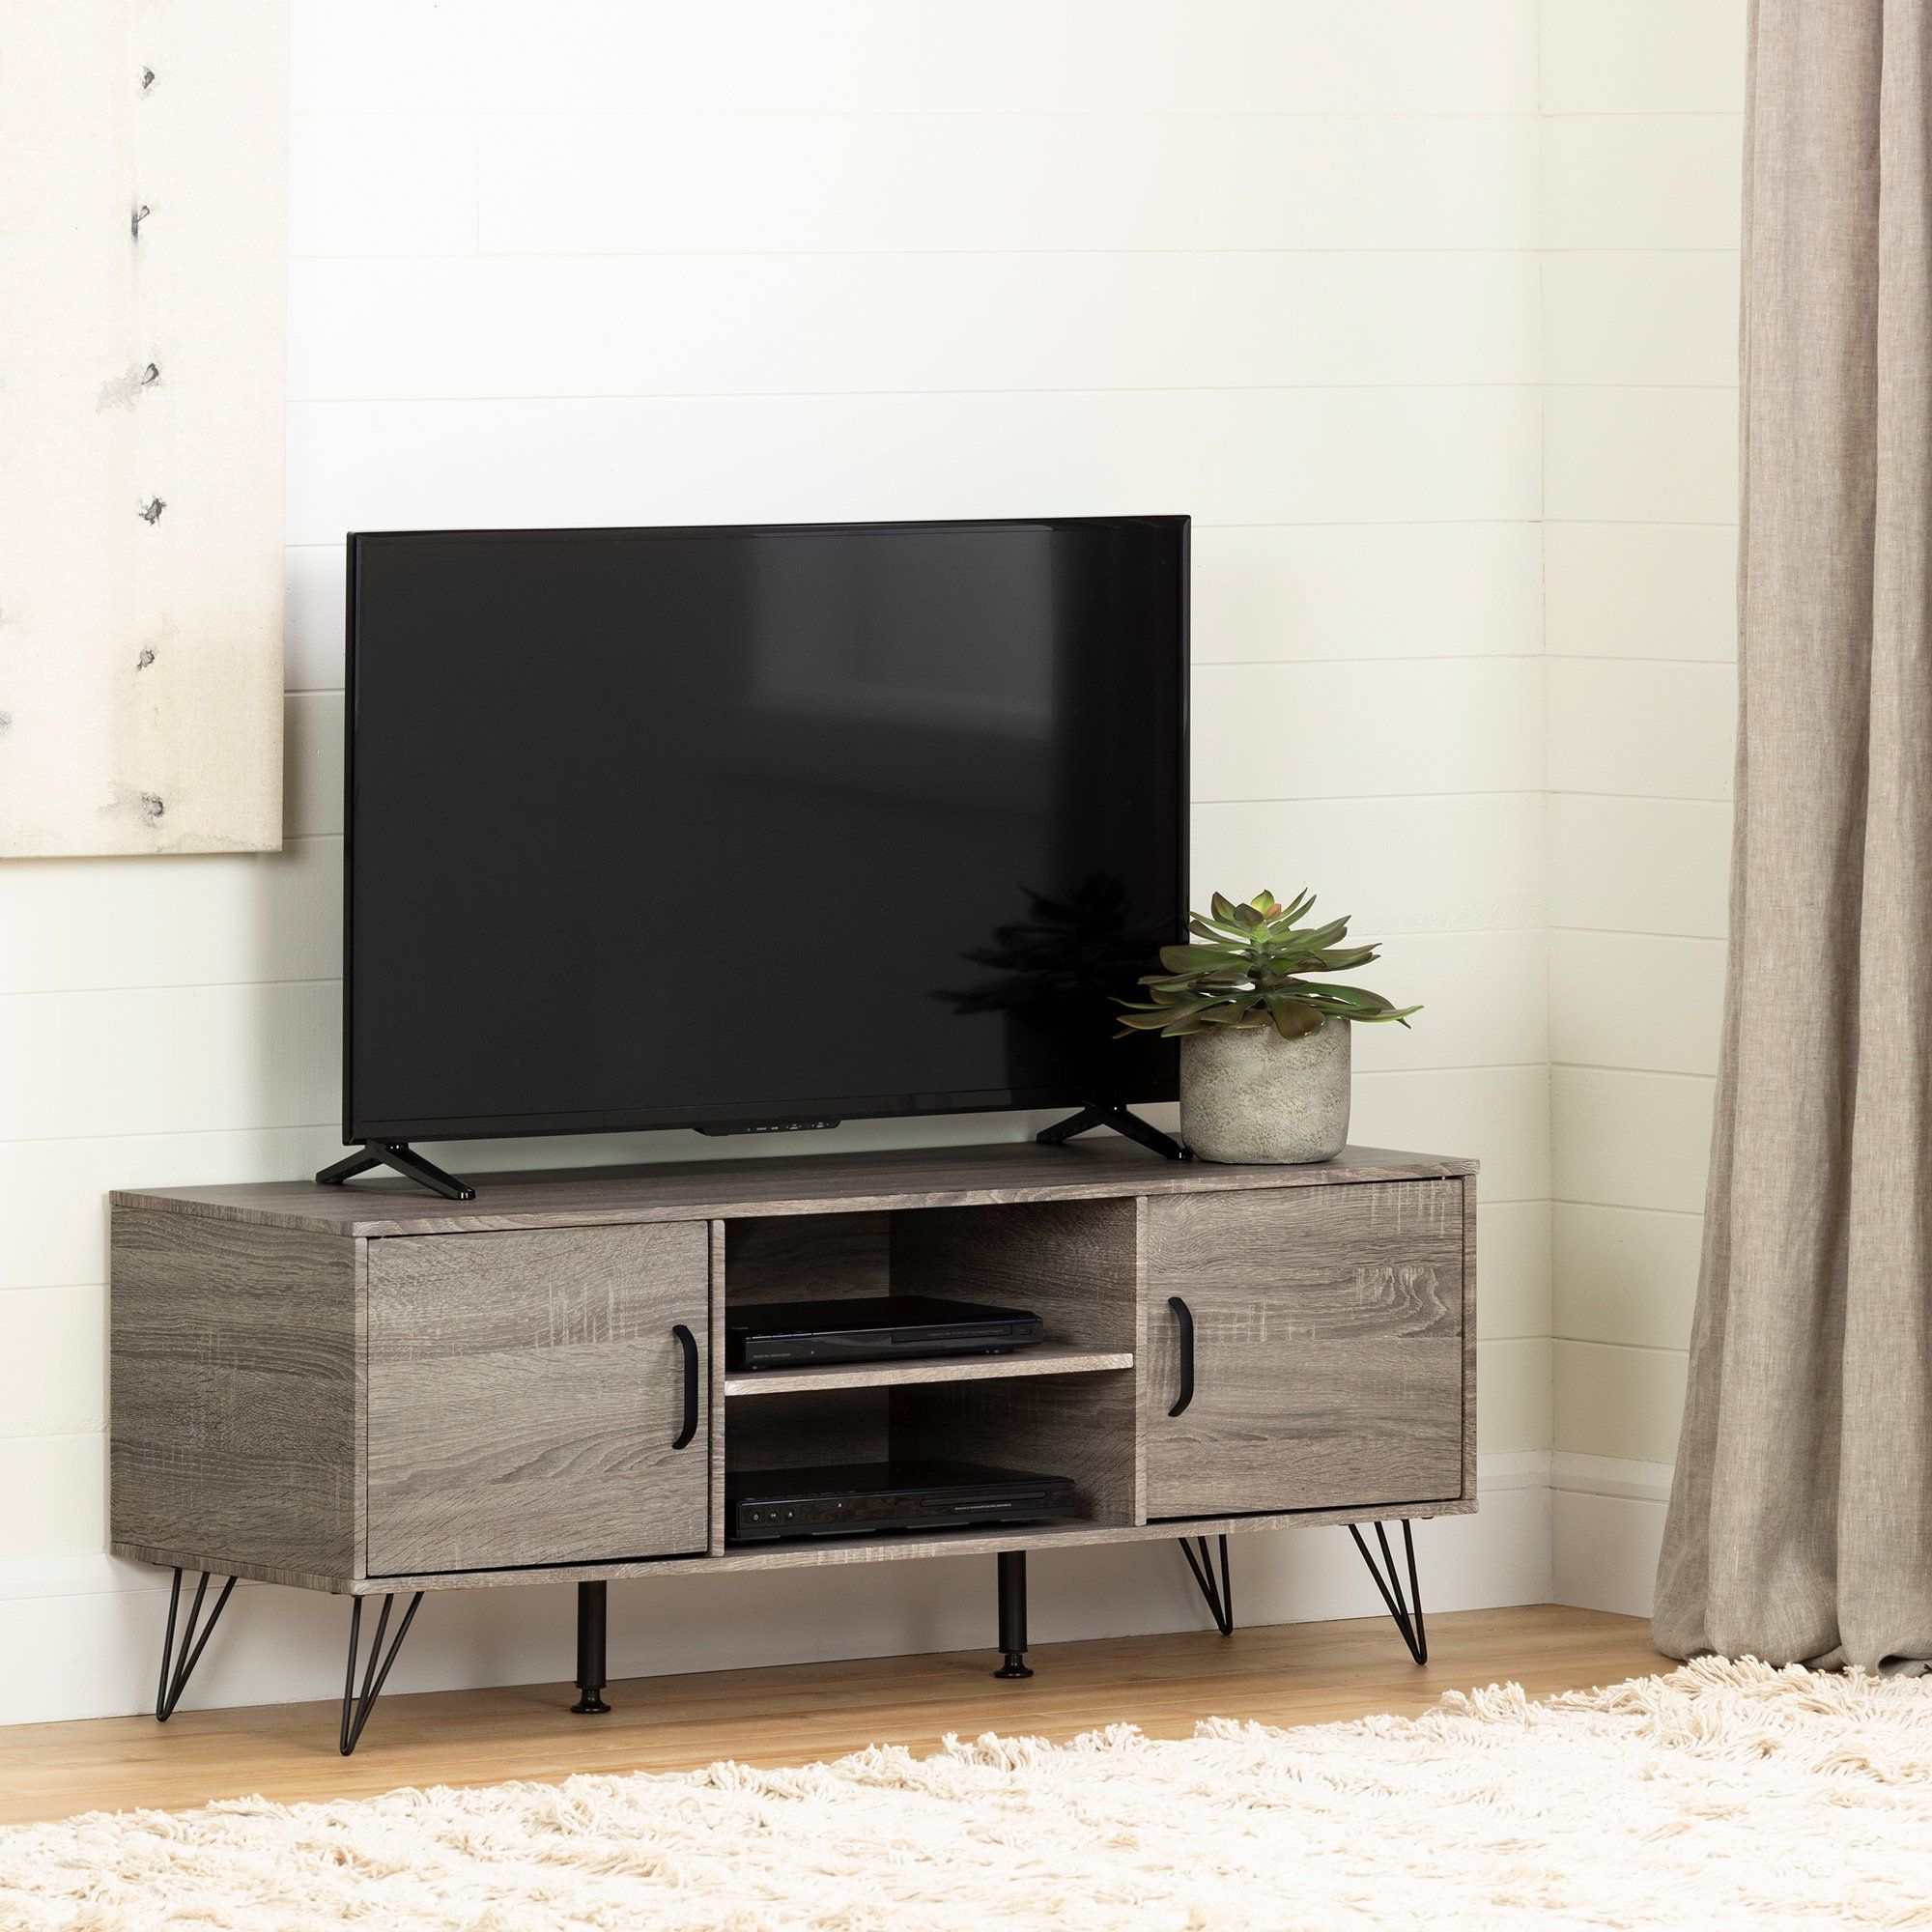 47 Inch Oak Caramel Tv Stand With Doors – Evane In 2020 With Regard To South Shore Evane Tv Stands With Doors In Oak Camel (View 6 of 20)